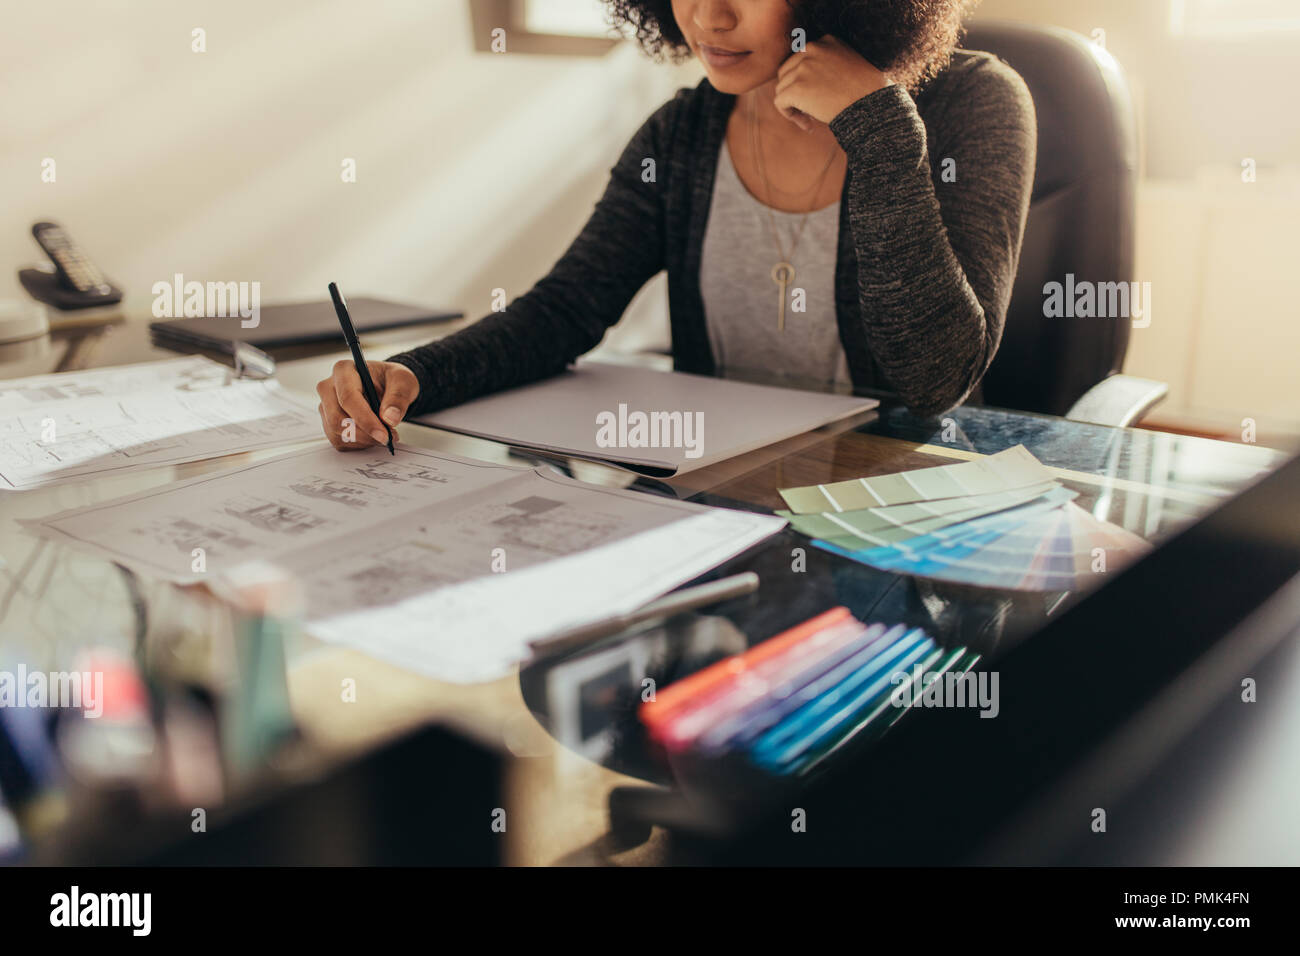 Female architect working on house floor designs at her work desk. Woman preparing new building plan while sitting at her work desk. - Stock Image